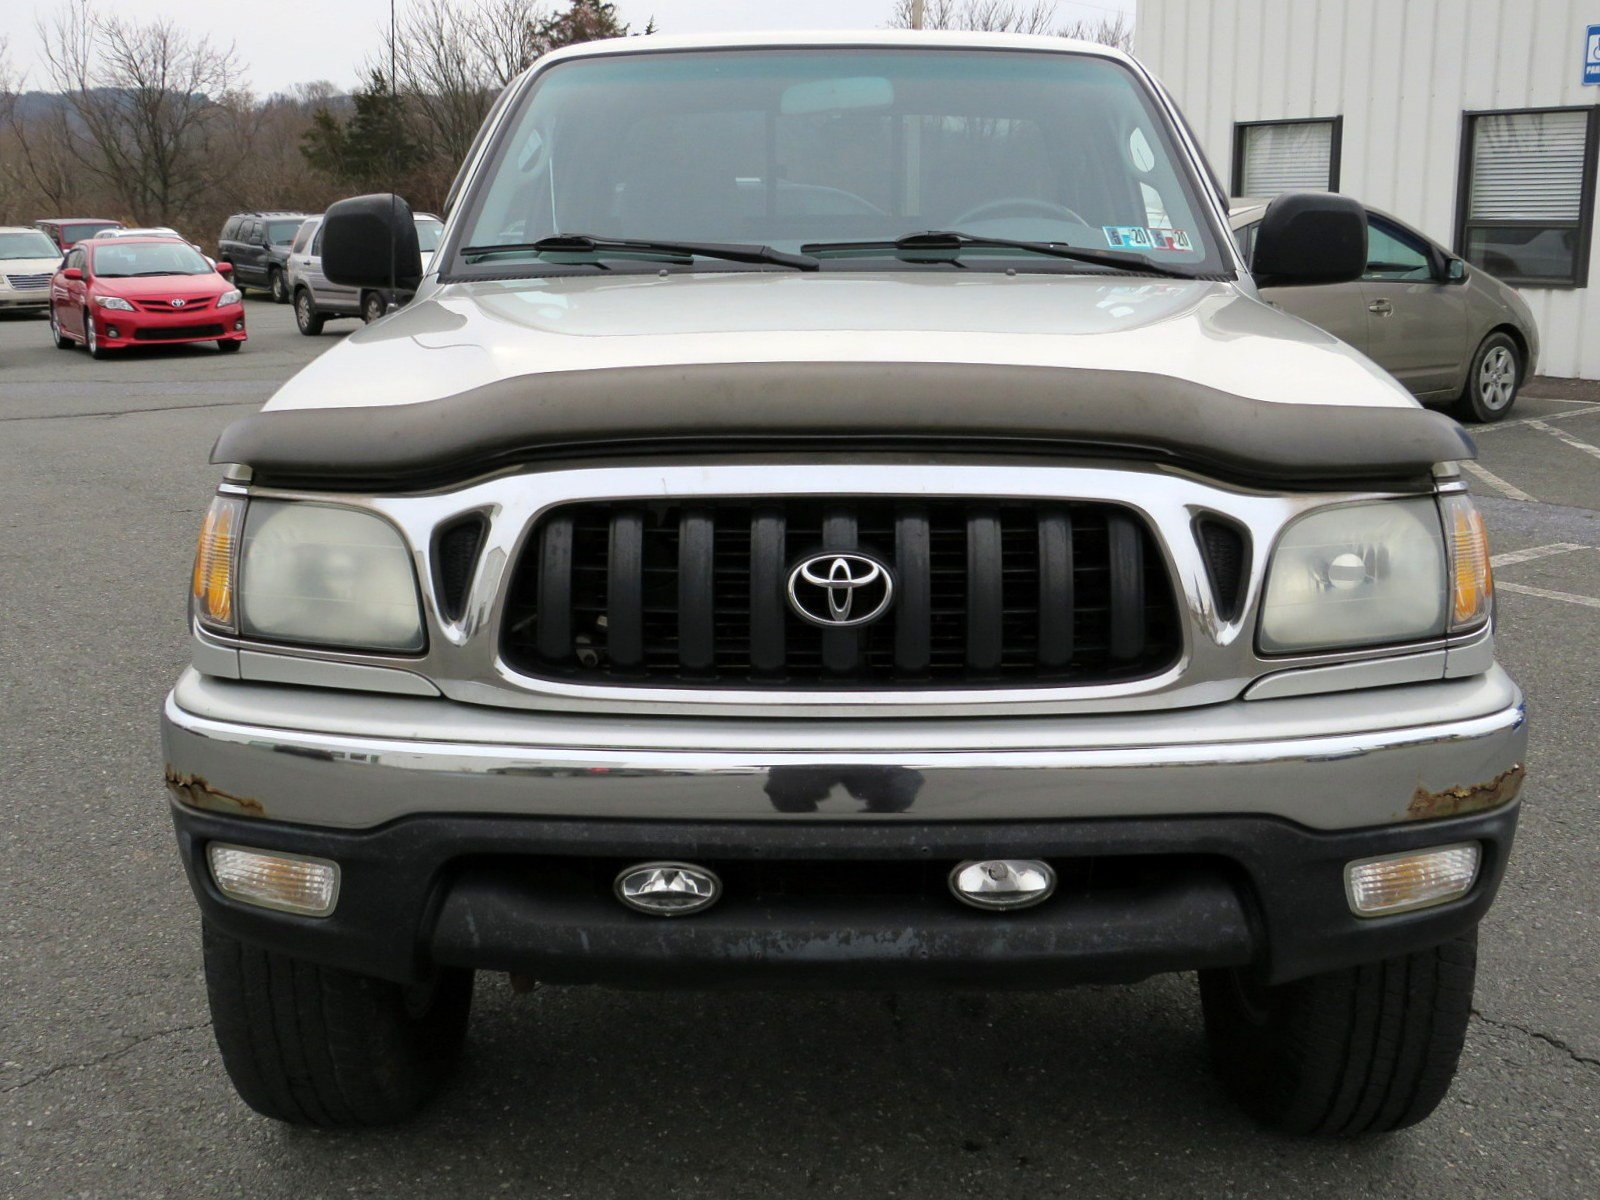 Pre-Owned 2002 Toyota Tacoma